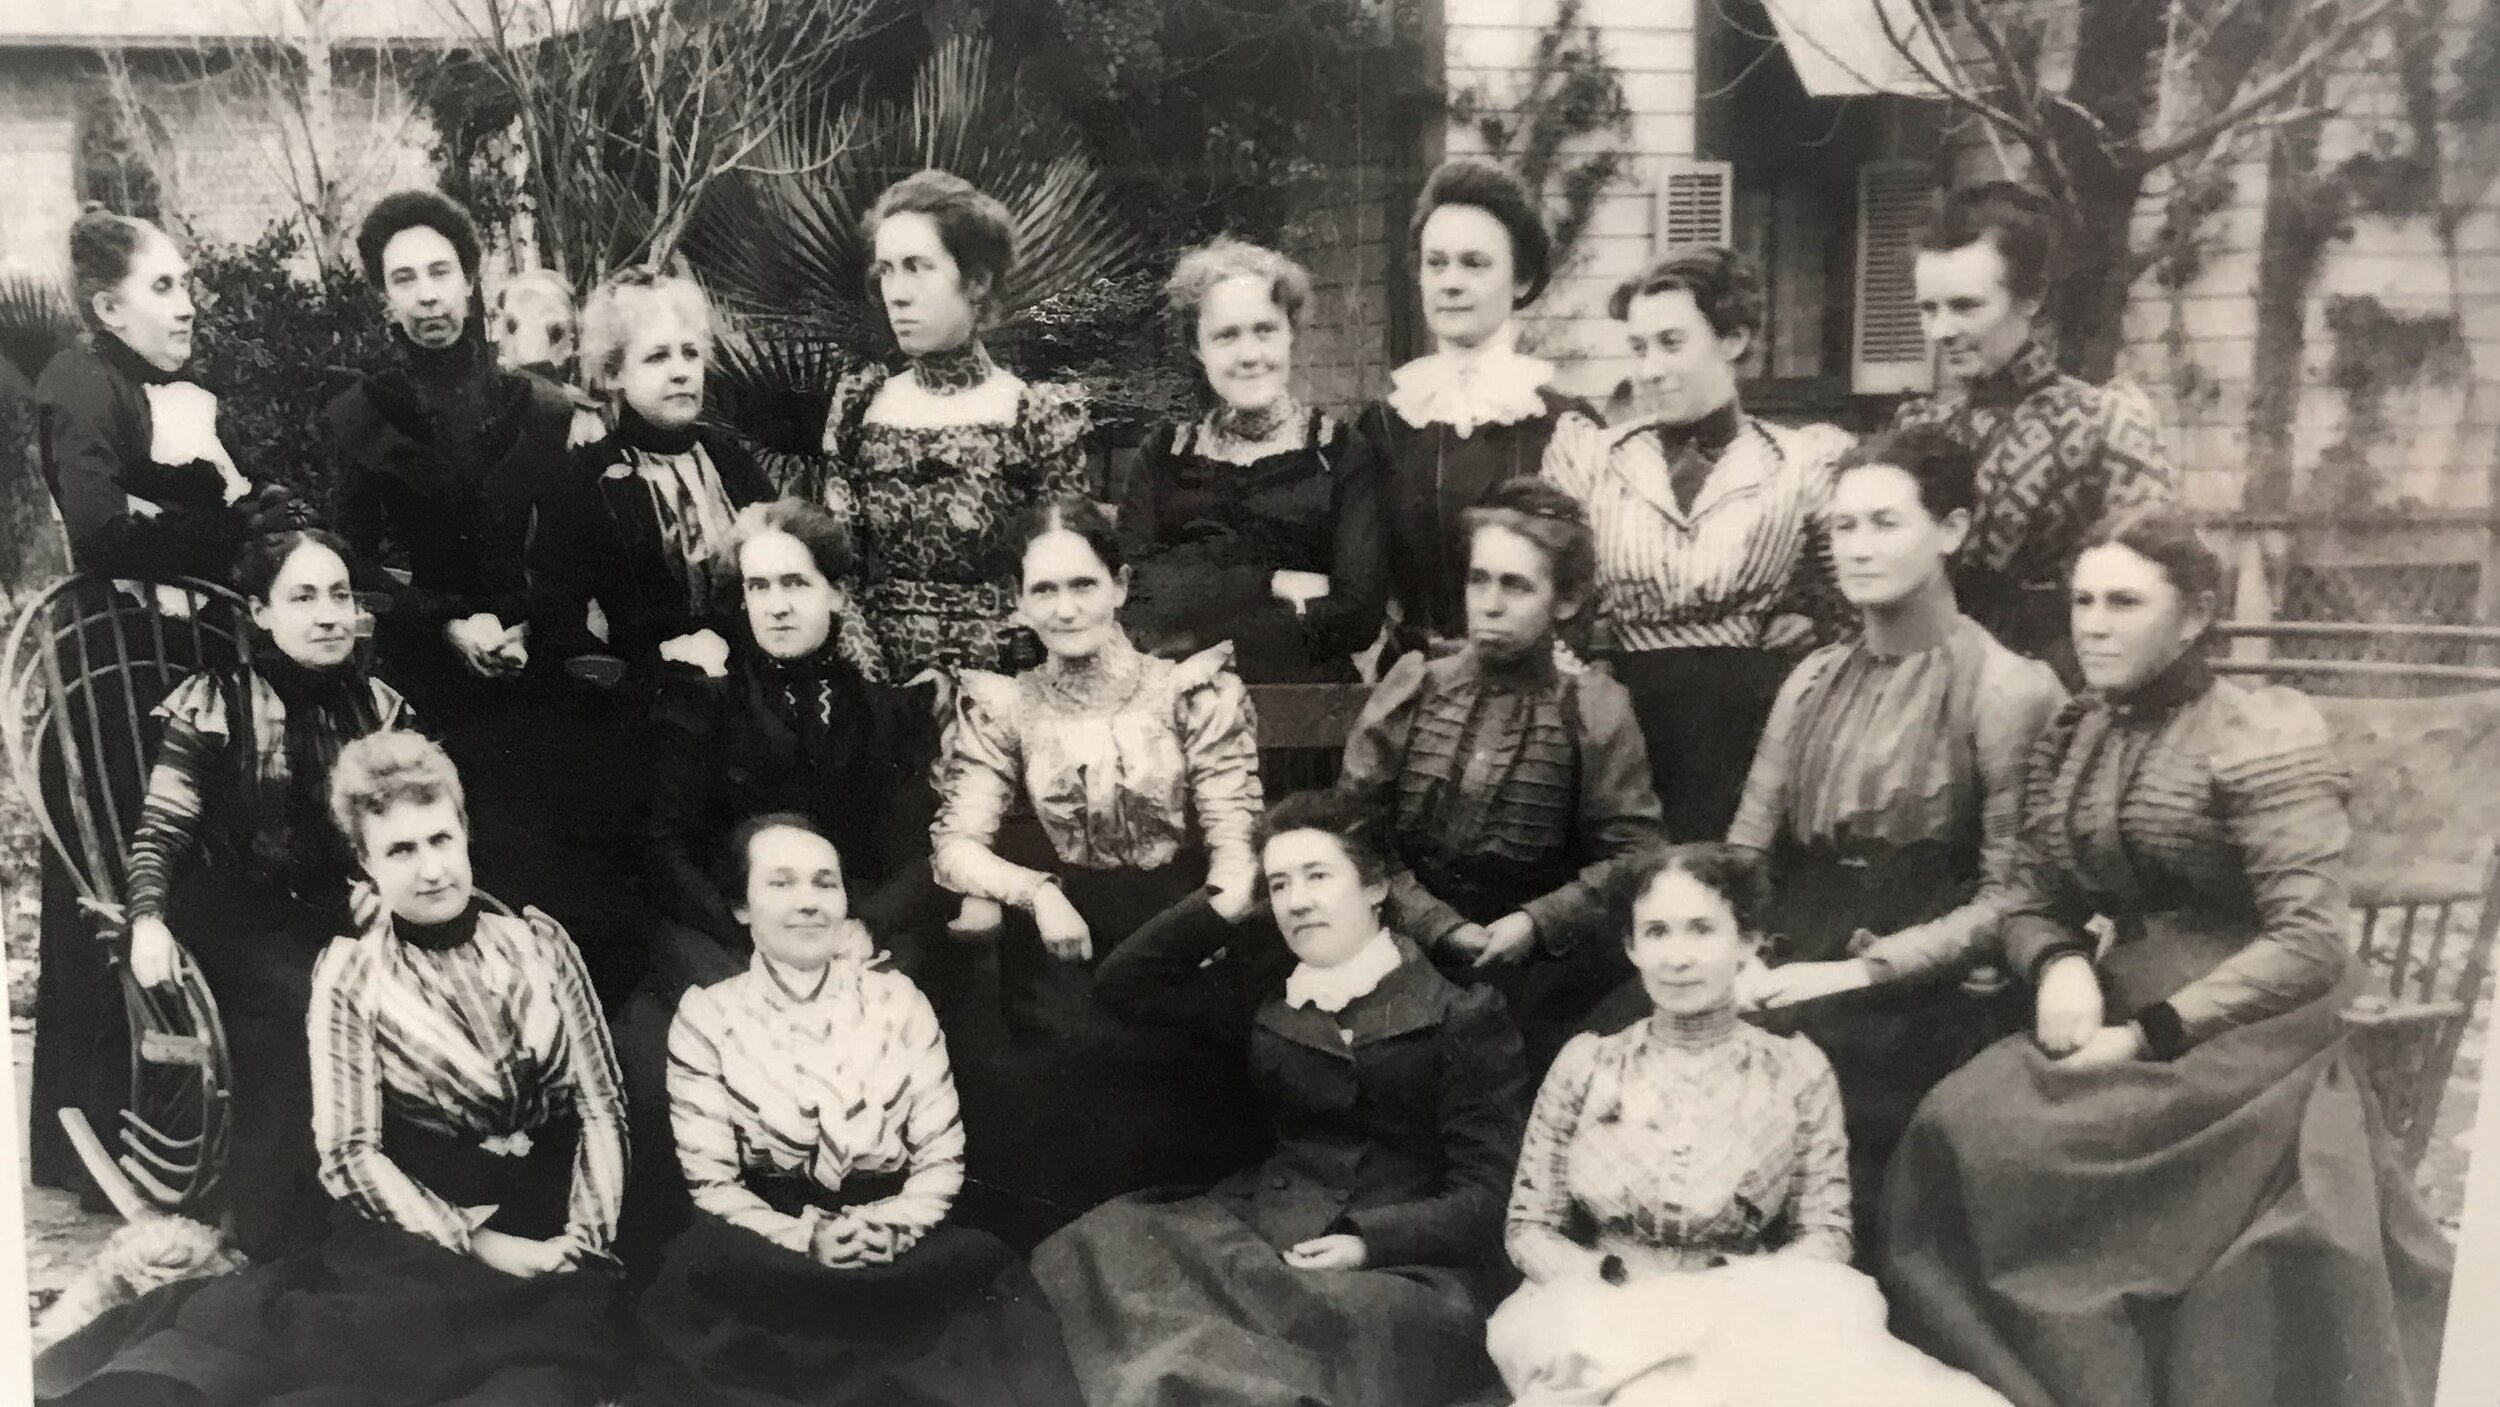 First executive board of The Woman's Club of Bakersfield, 1896. Virginia Harrell, wife of Alfred Harrell, is pictured in the middle row, second from the right.